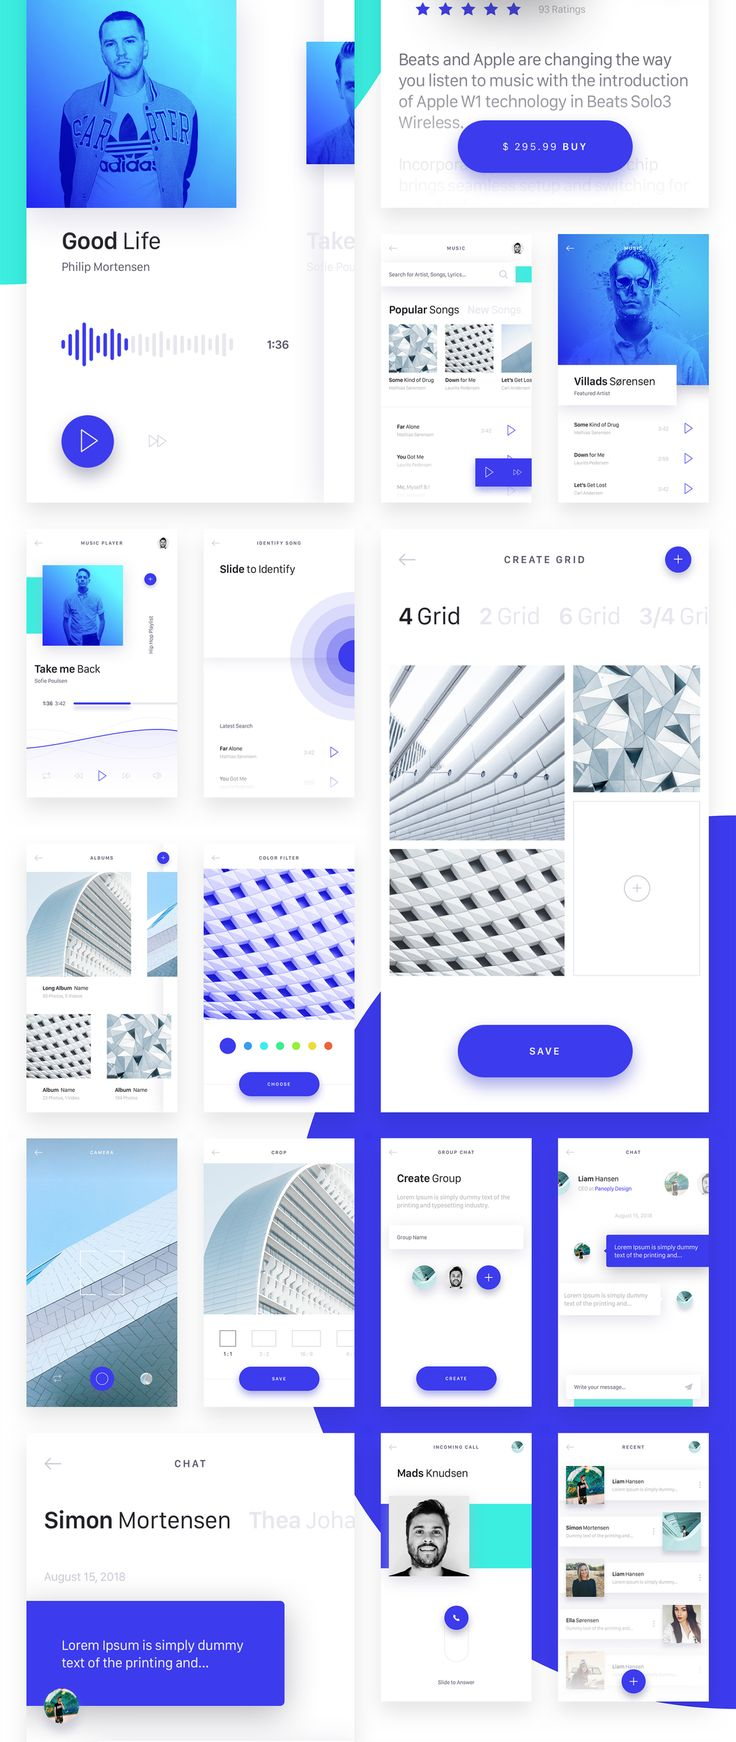 Brake is UI Kit with more than 50 app screens in 10 categories. Each screen is fully customizable, exceptionally easy to use and carefully layered and grouped in Sketch app. It's all you need for quick prototype, design and develops any iOS app in Sketch. You can use it for designing social network apps, dashboard & stats apps, media & news apps (blogs, videos, galleries...), e-commerce apps (shop, store), booking apps, music and much more... In download folder you will find also ...